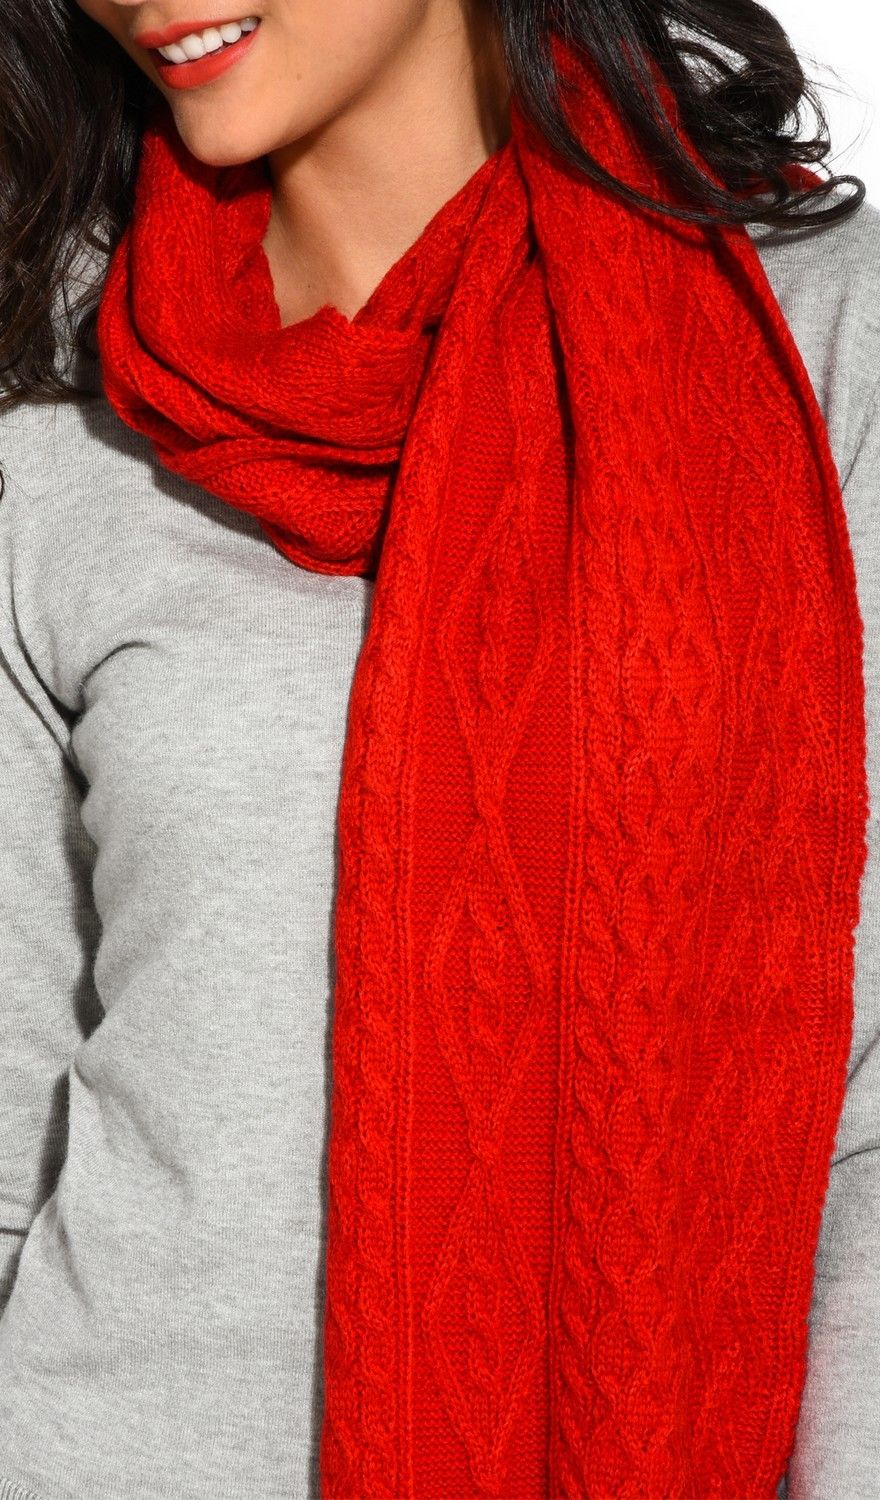 Assuili Twisted 4 Yarn 200x30cm Scarf in Red